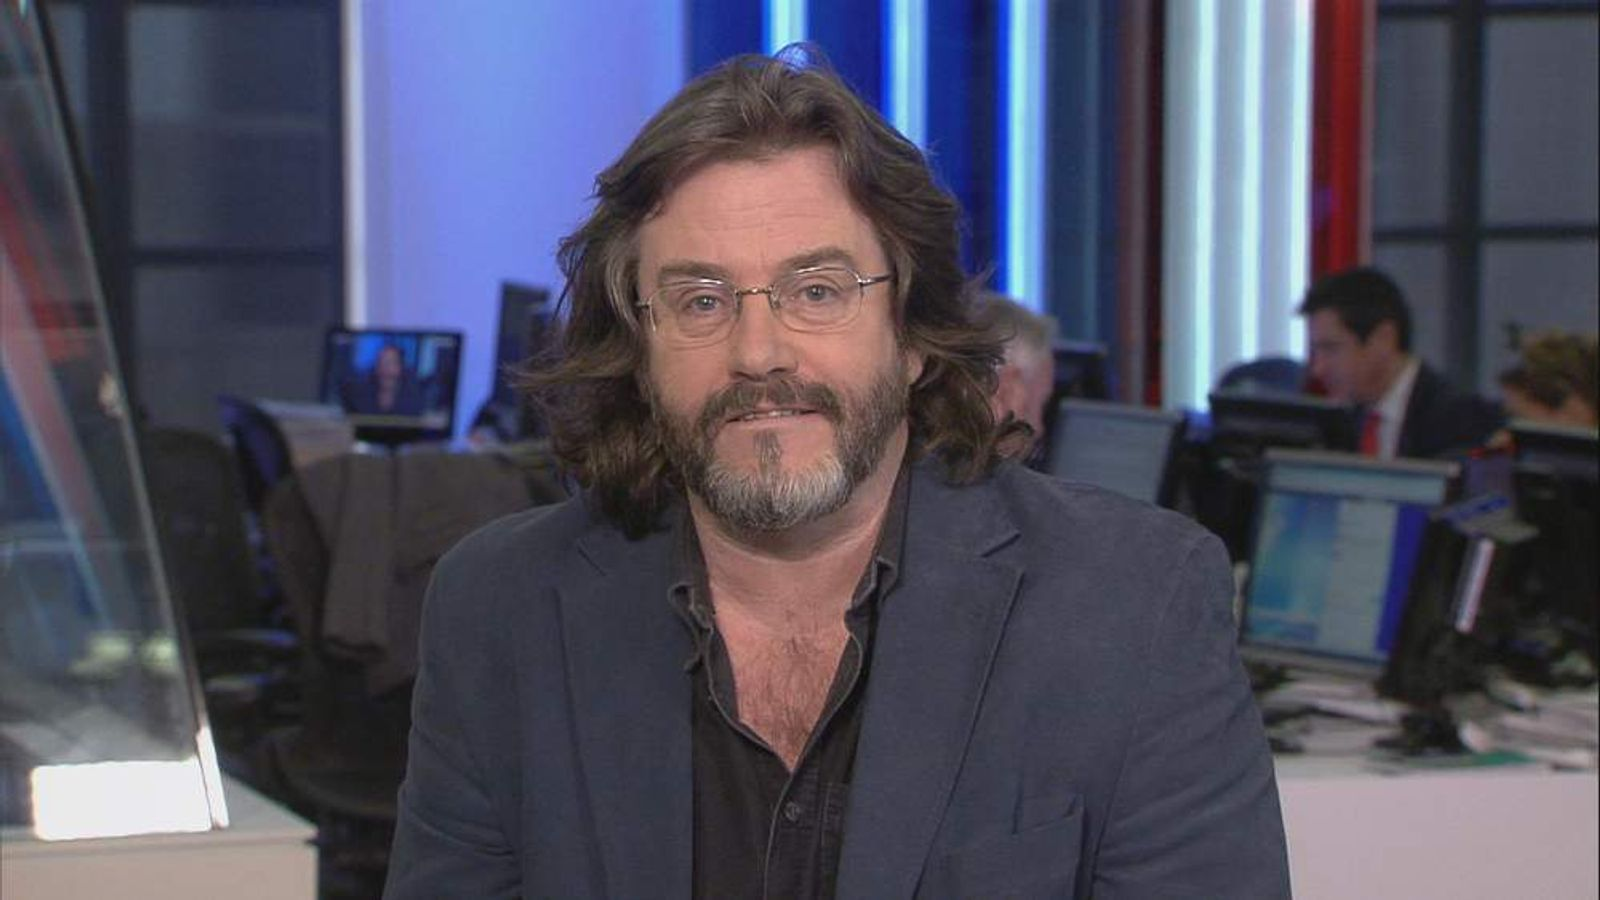 Gregory Doran, artistic director of the Royal Shakespeare Company